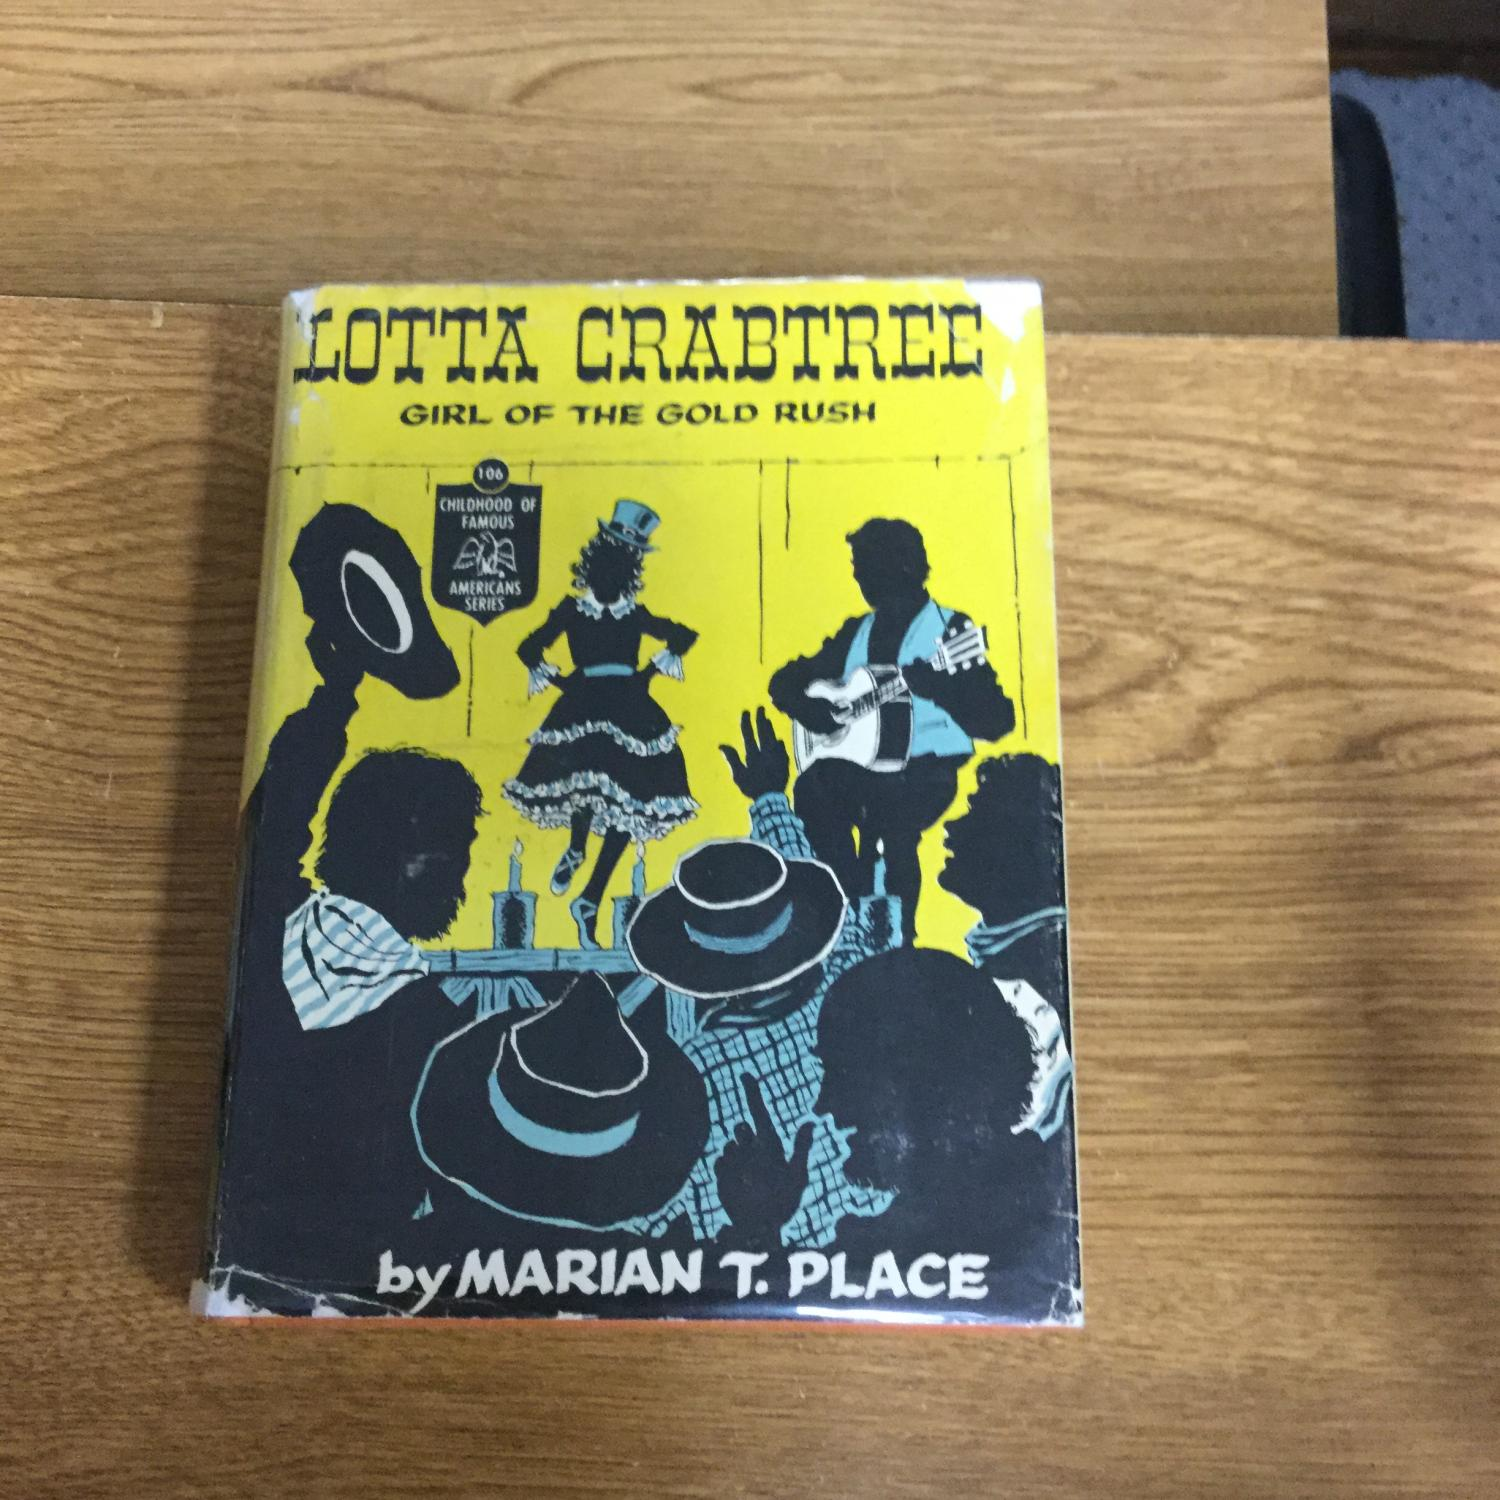 Lotta_Crabtree:_Girl_of_the_Gold_Rush_Place,_Marian_T._[Very_Good]_[Hardcover]